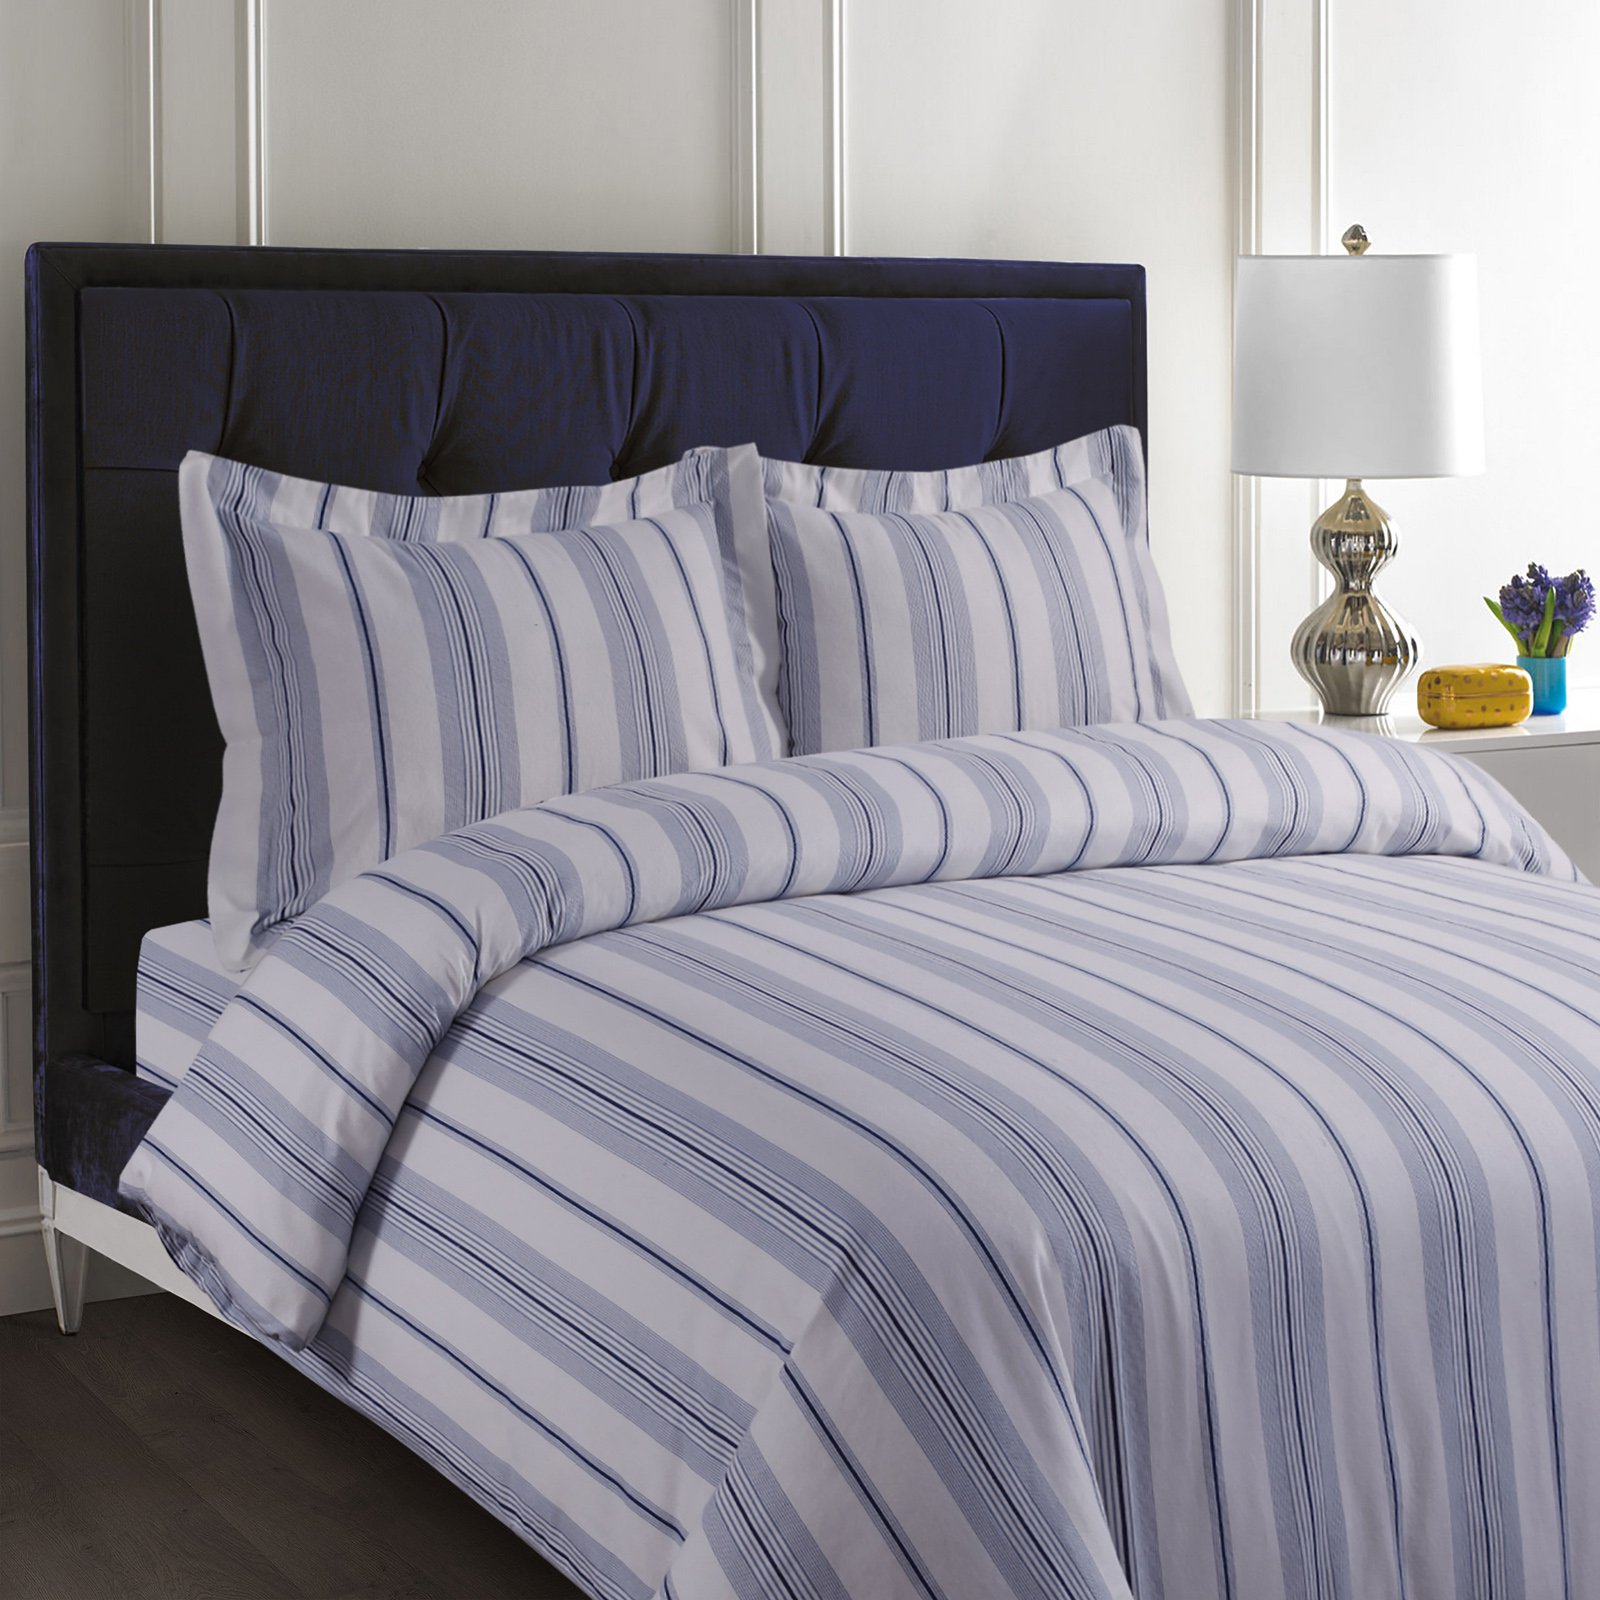 Printed Flannel 3 Piece Stripe Duvet Cover Set by Tribeca Living - Light Blue